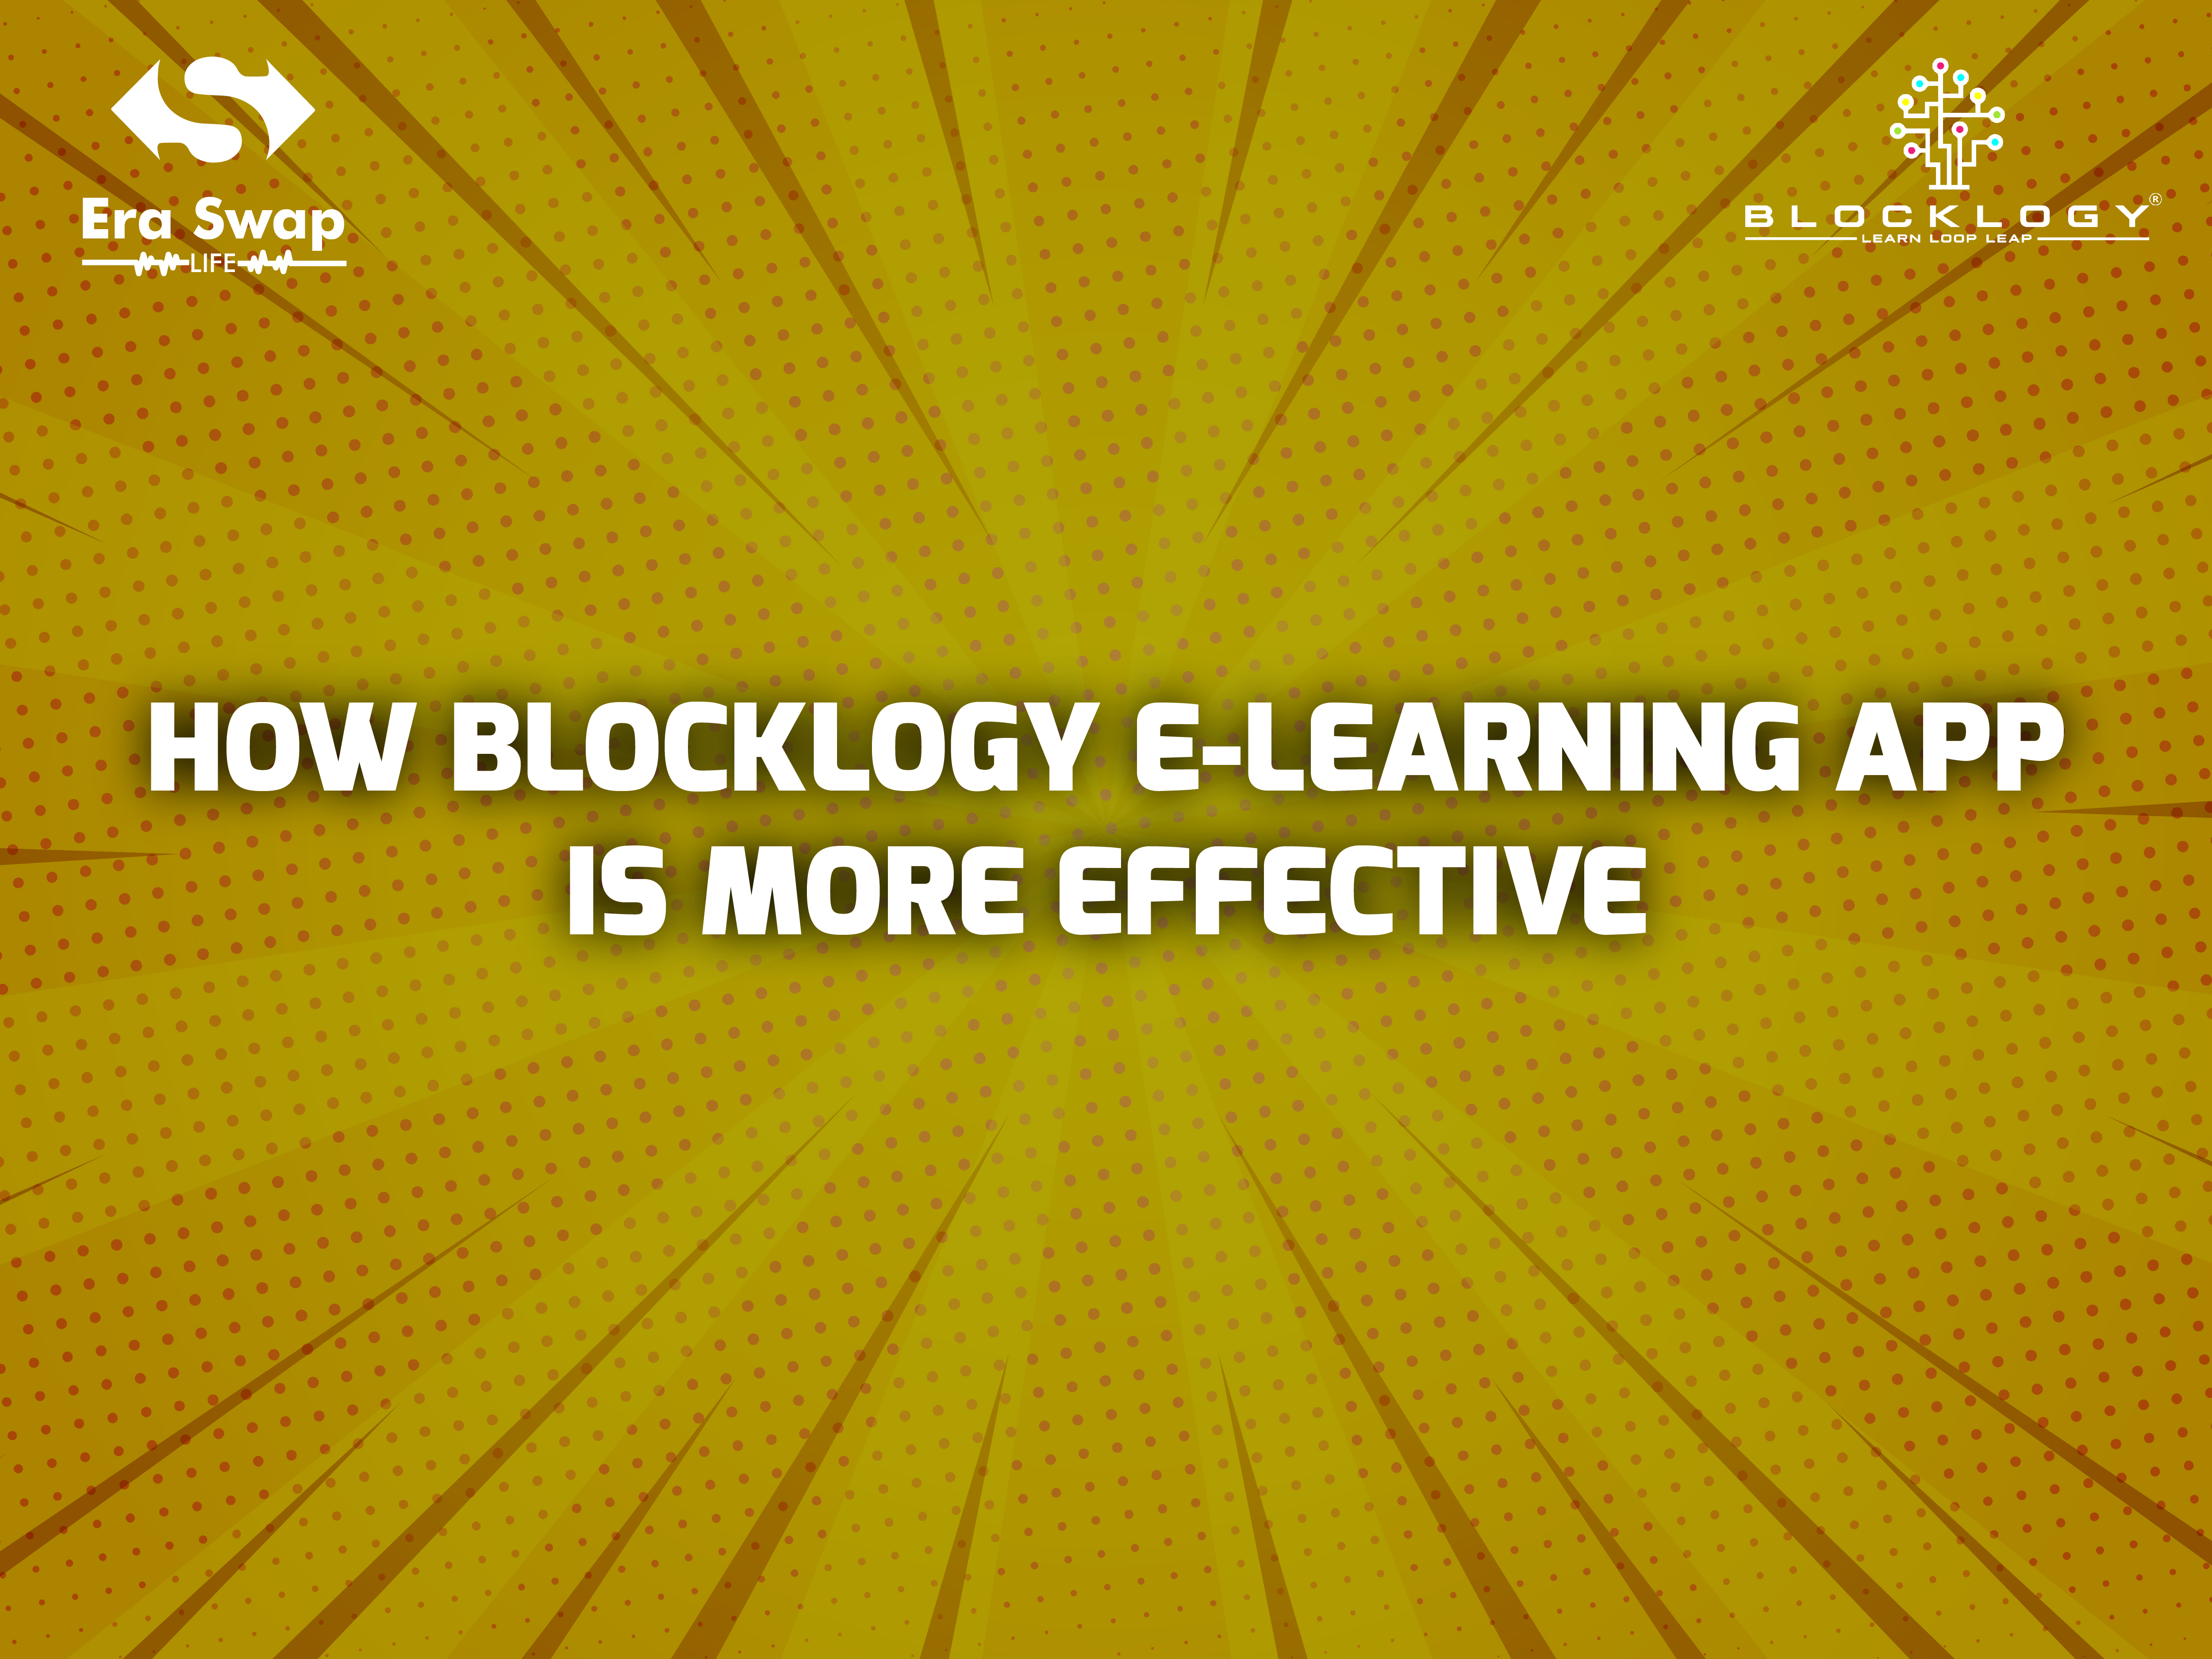 Blocklogy | 5 Reasons Why Blocklogy E-Learning is More Effective